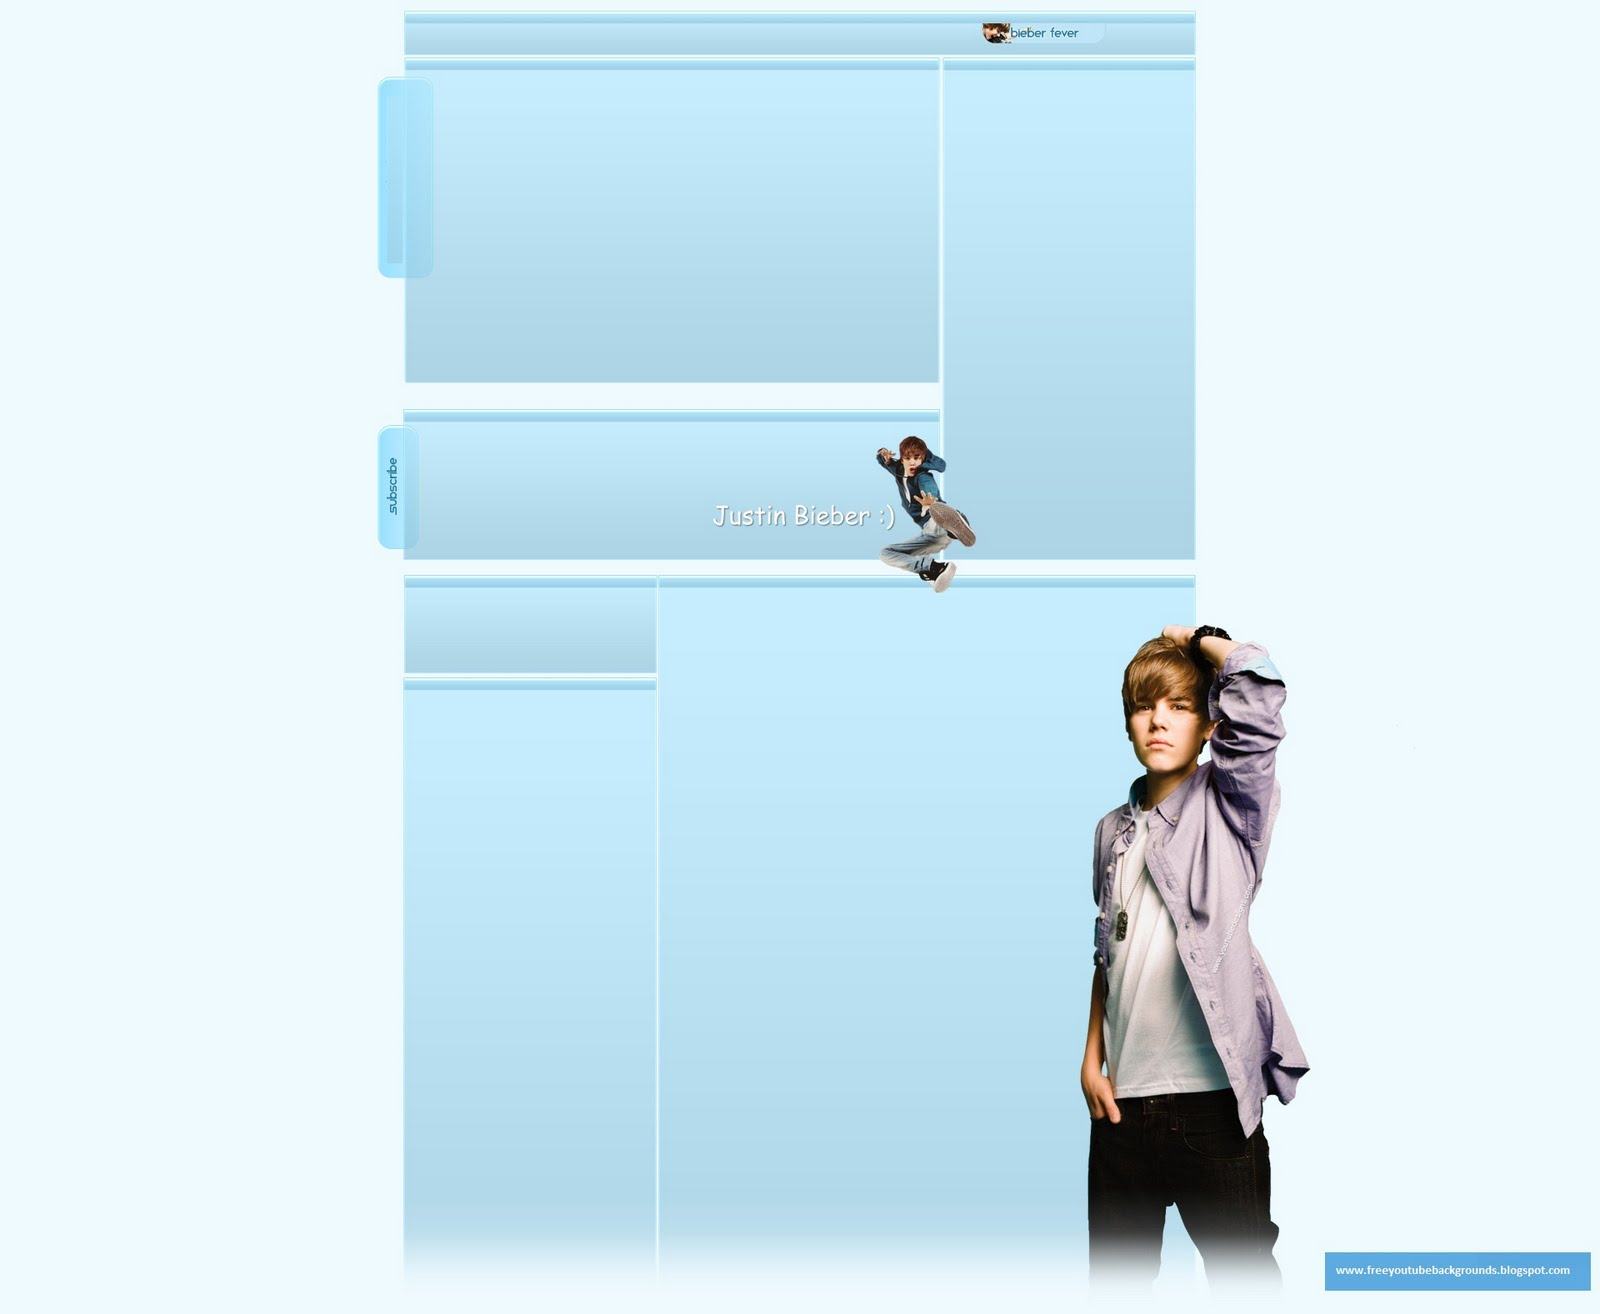 http://3.bp.blogspot.com/_-xxzaRaMITc/TSdSaeEI5FI/AAAAAAAAAZc/1ZdRM_VrcWI/s1600/Justin-Bieber-YouTube-Background.jpg